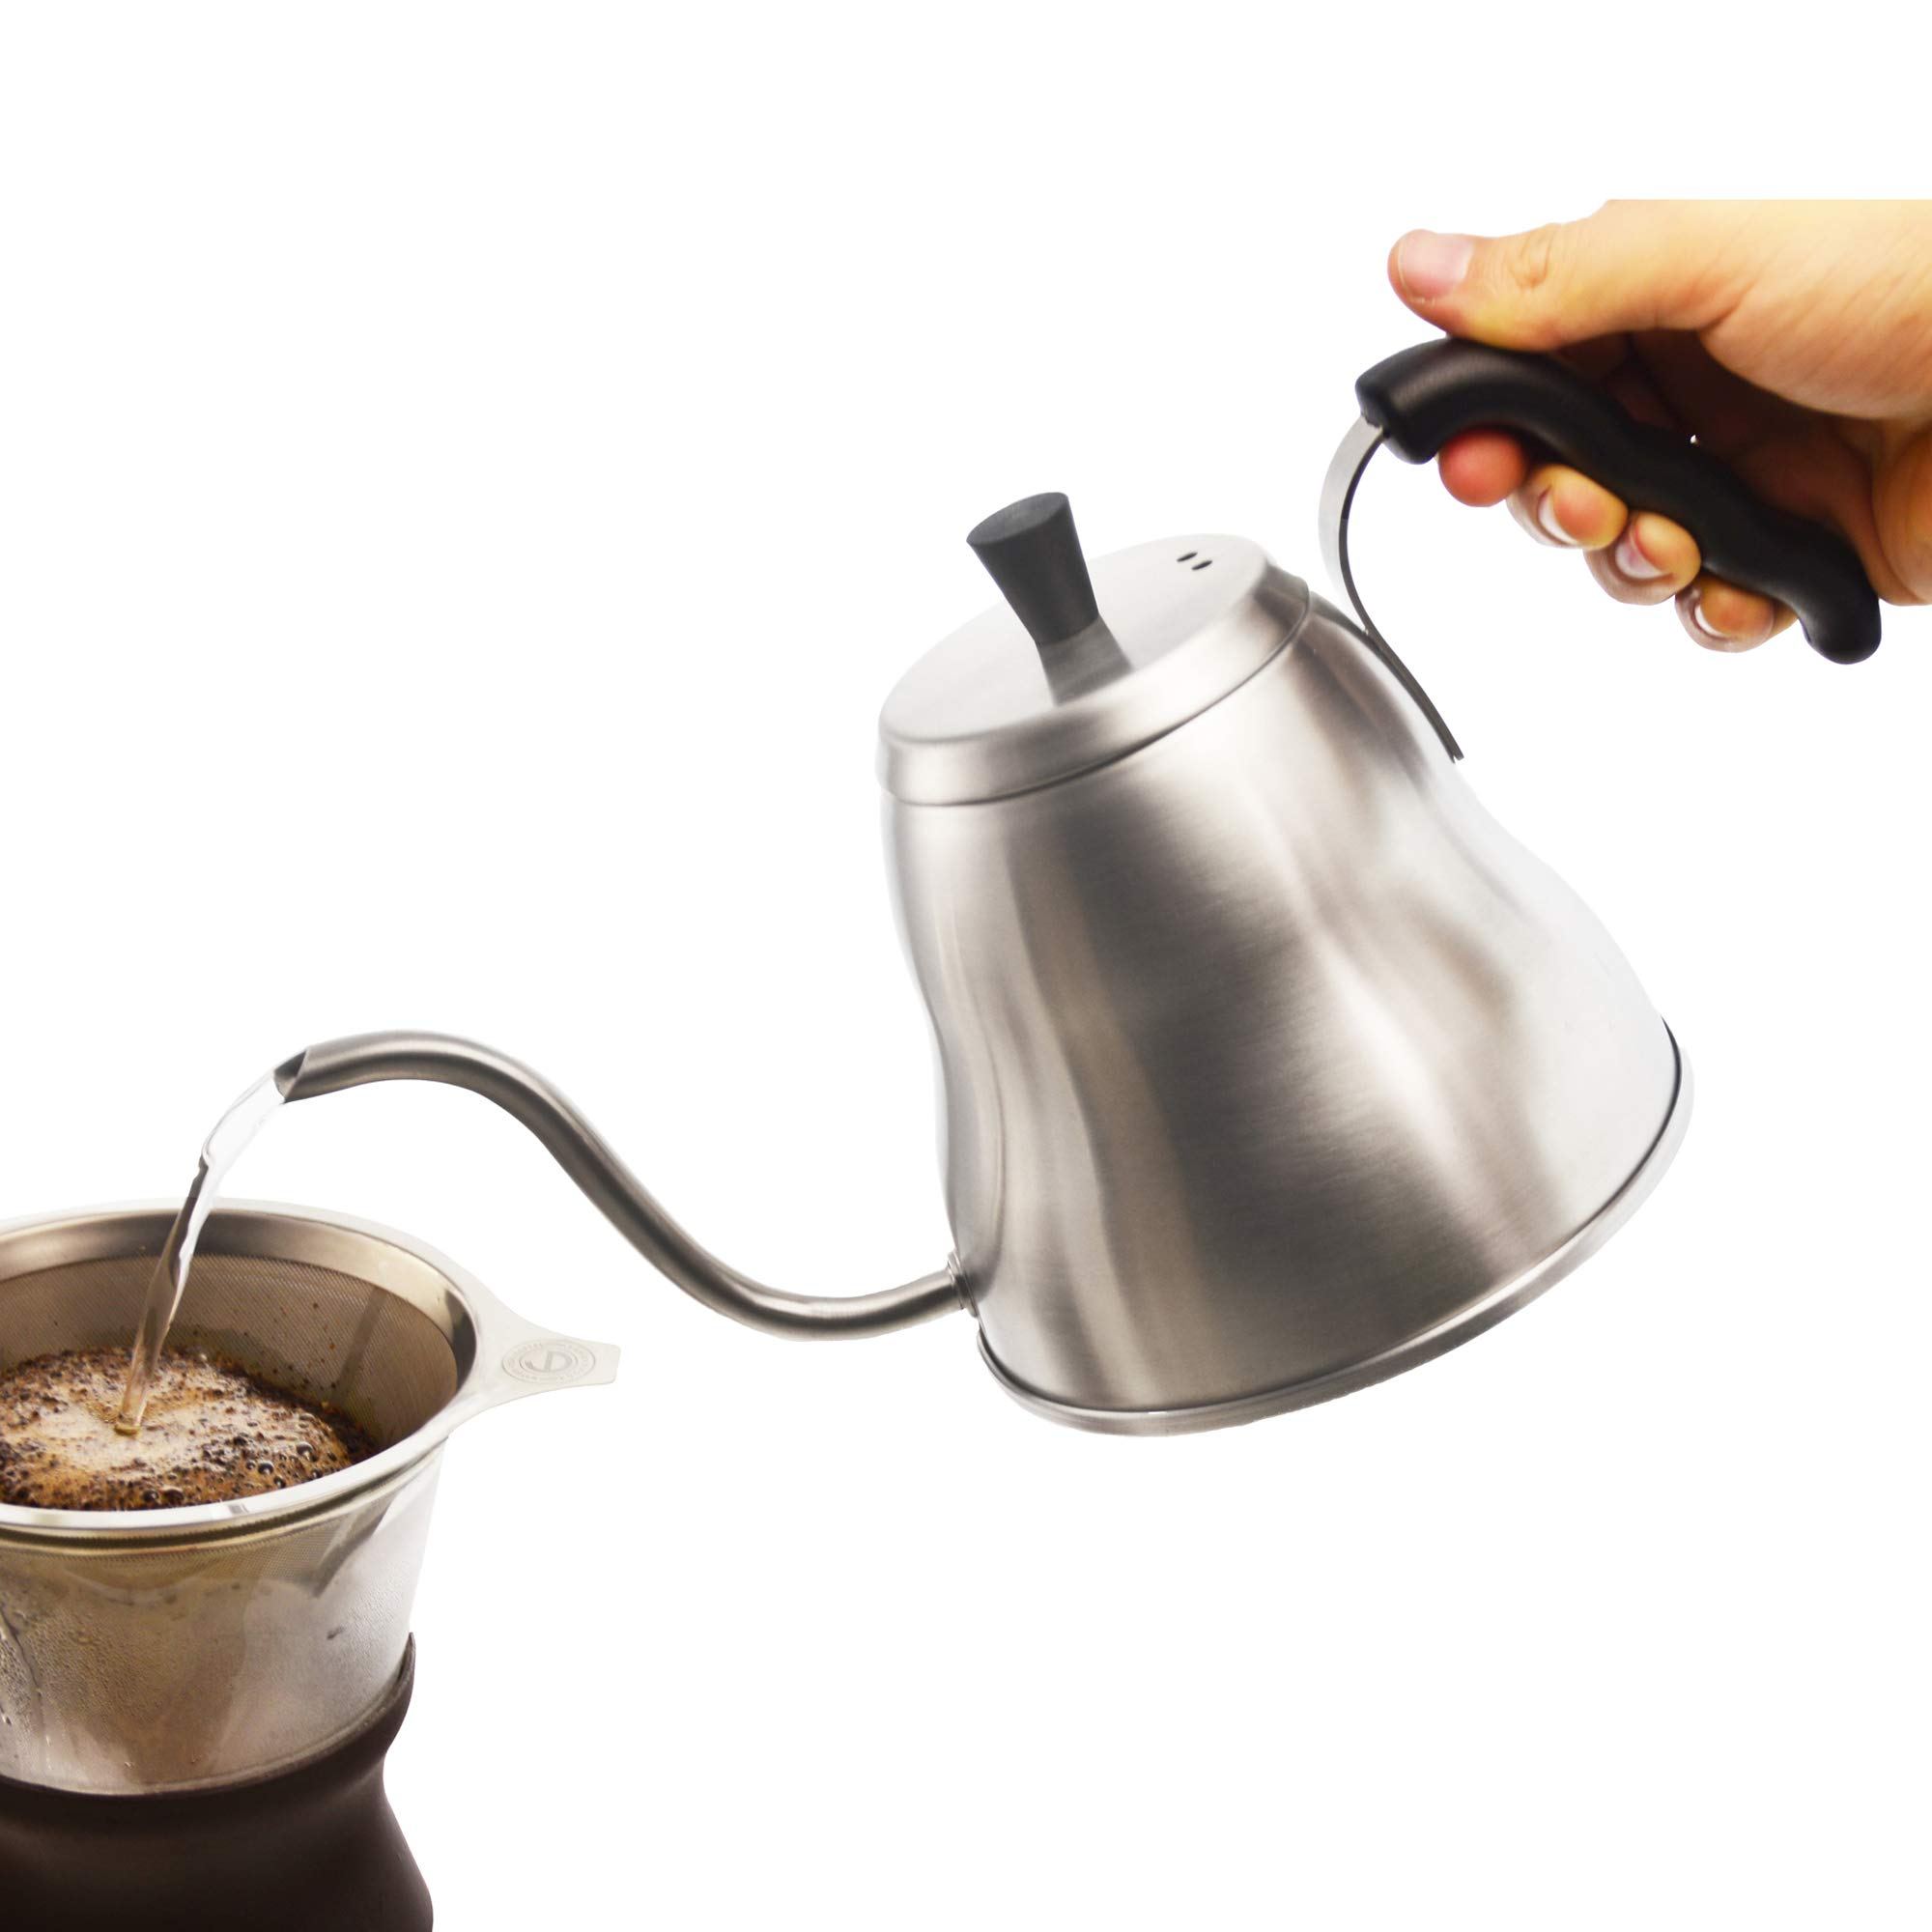 GROSCHE Marrakesh Gooseneck Pour Over Kettle for Stove top Use for pour over coffee or coffee dripper. 1 liter 34 fl. oz capacity. 18/8 Stainless Steel. Perfect Pour control and safe for all stovetops by GROSCHE